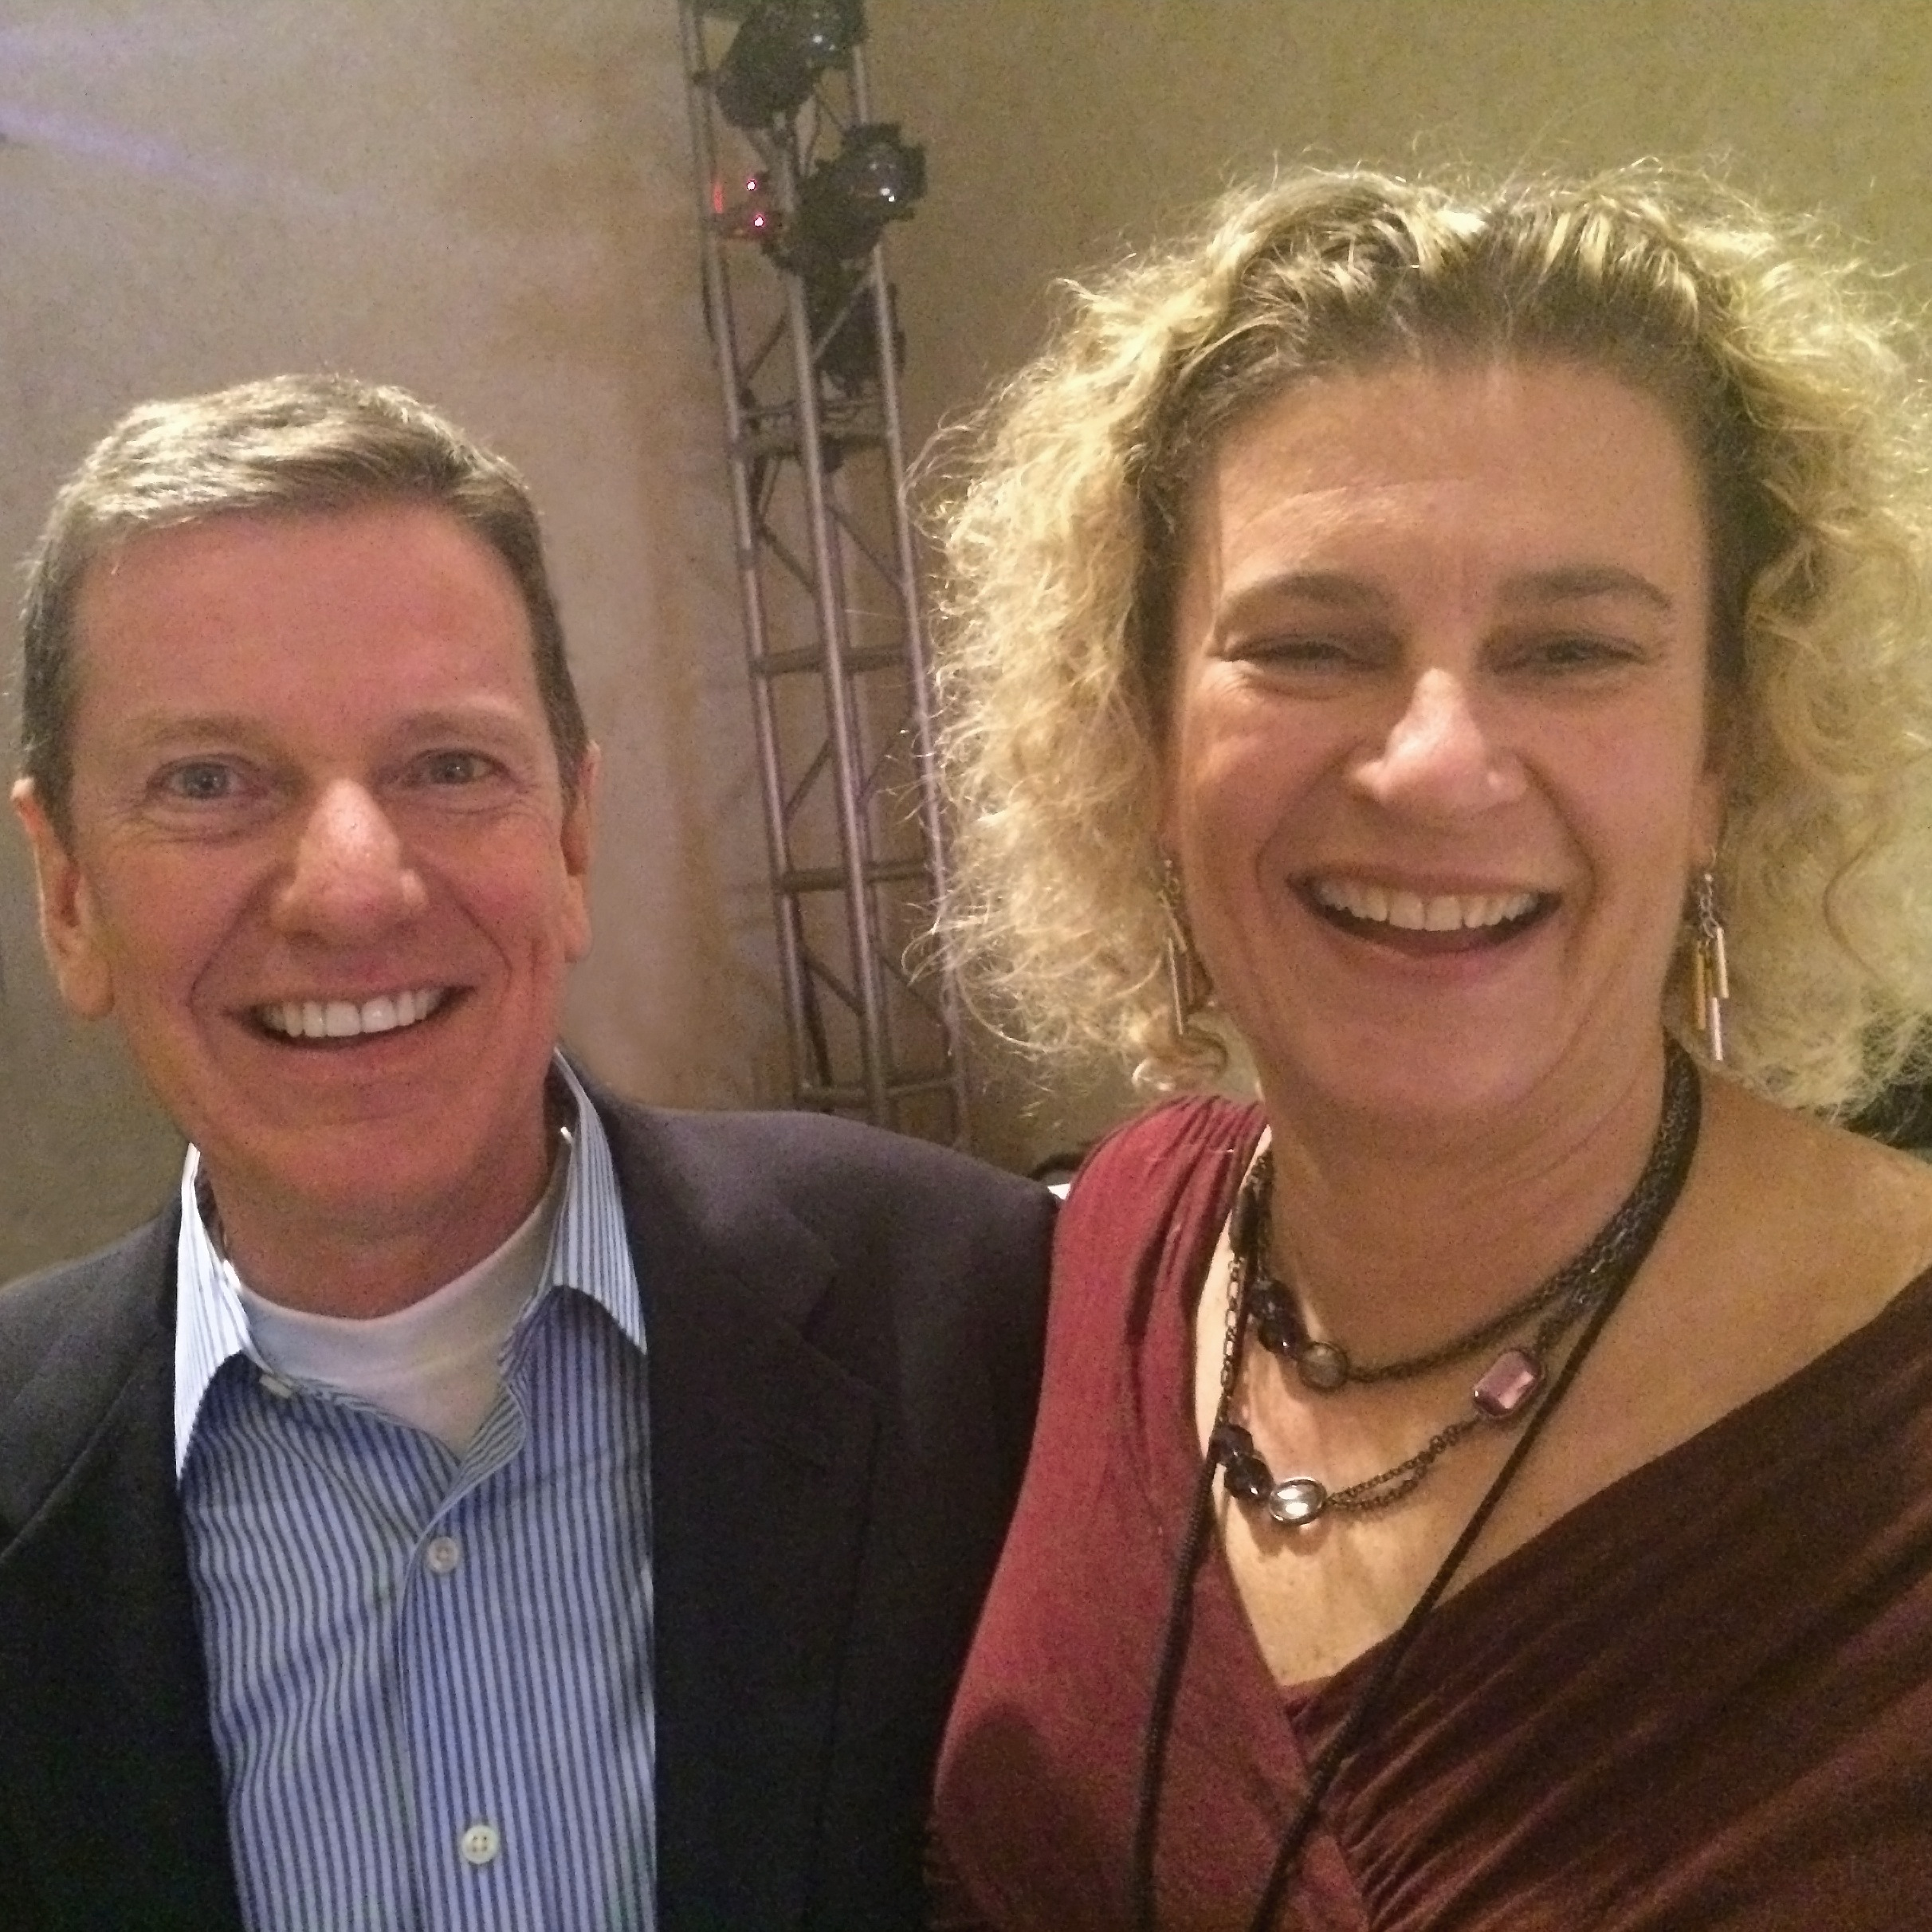 The Shocking Truth About Michael Hyatt